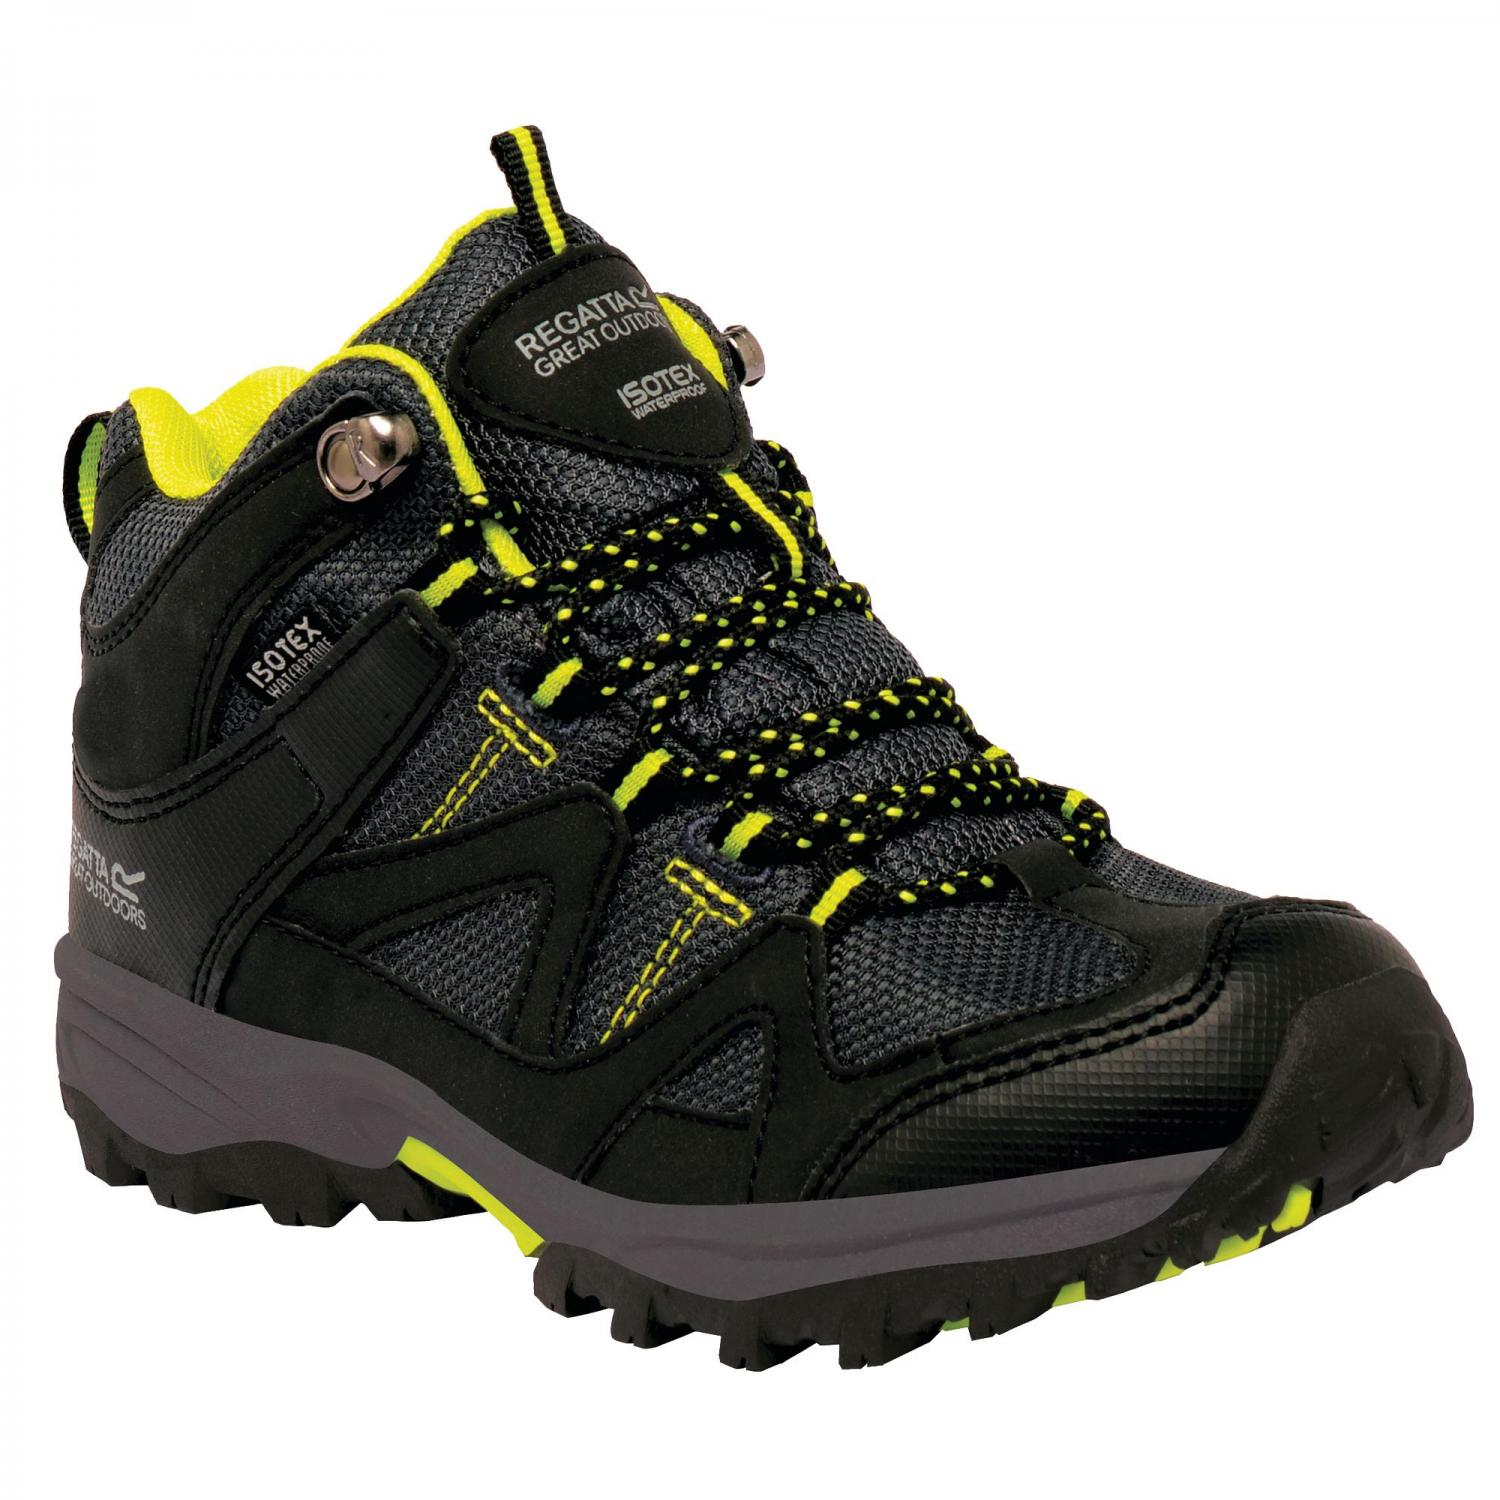 Gatlin Mid Junior Walking Boot Black Neon Spring